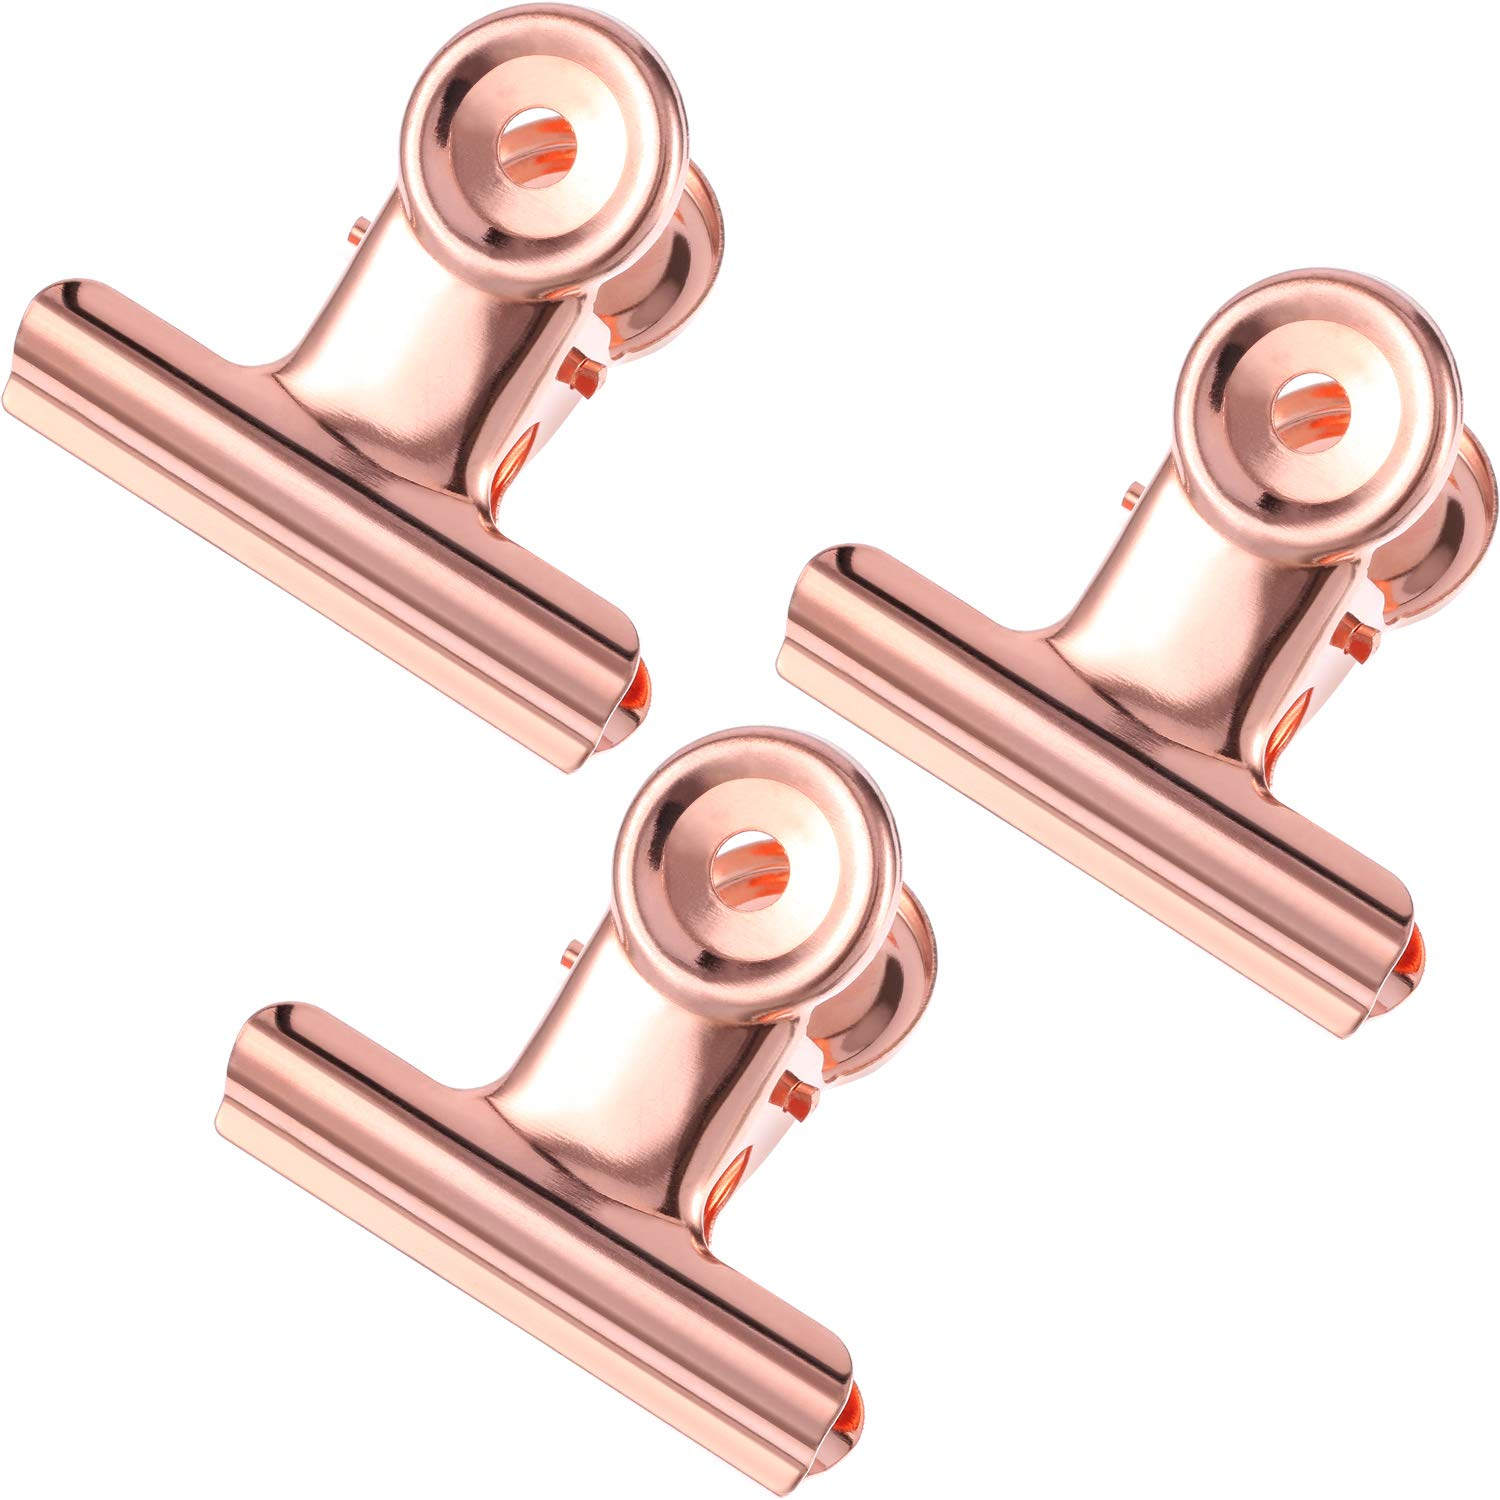 TecUnite Metal Bulldog Clips 2 Inch Bulldog Paper Clips Hinge Clamp File Binder Clips for Photo, File Storage, Home Office Supplies, Pack of 20 (Rose Gold)